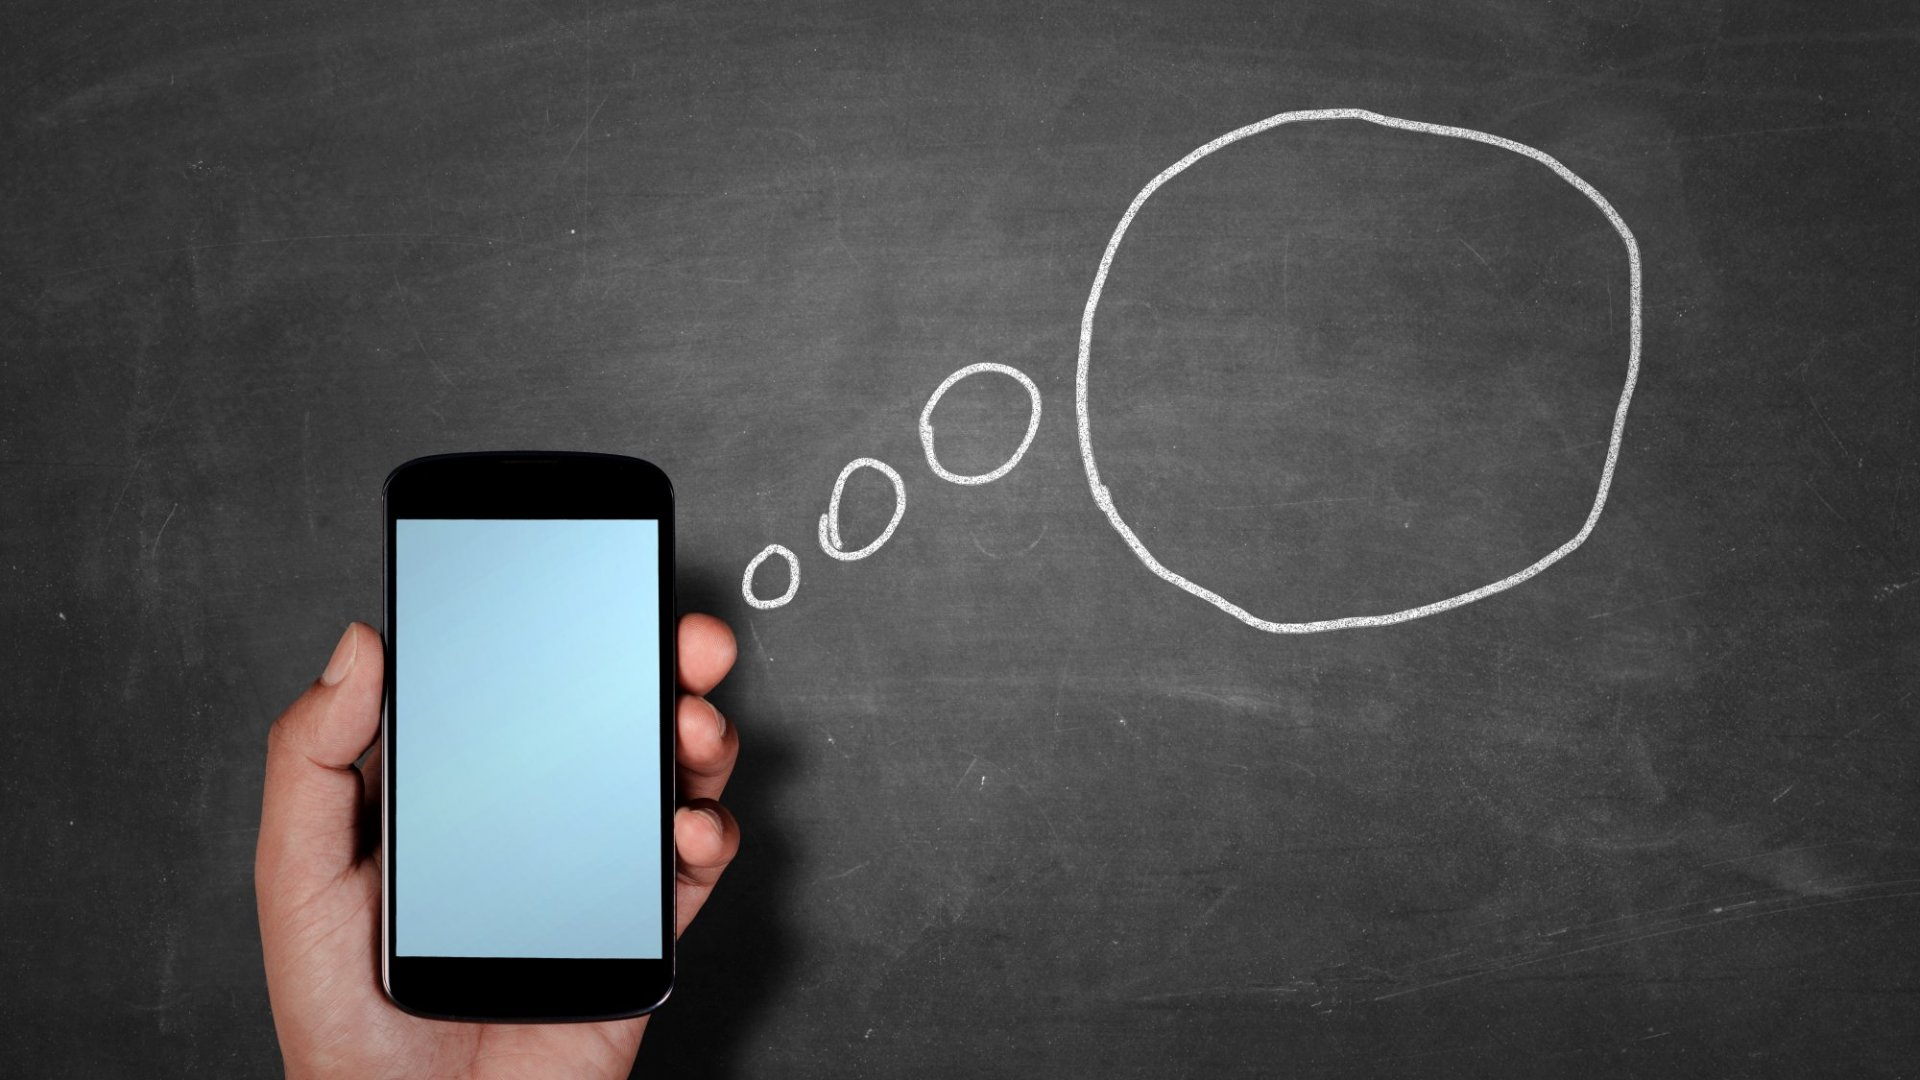 5 Public Speaking Apps to Perfect Your Next Presentation